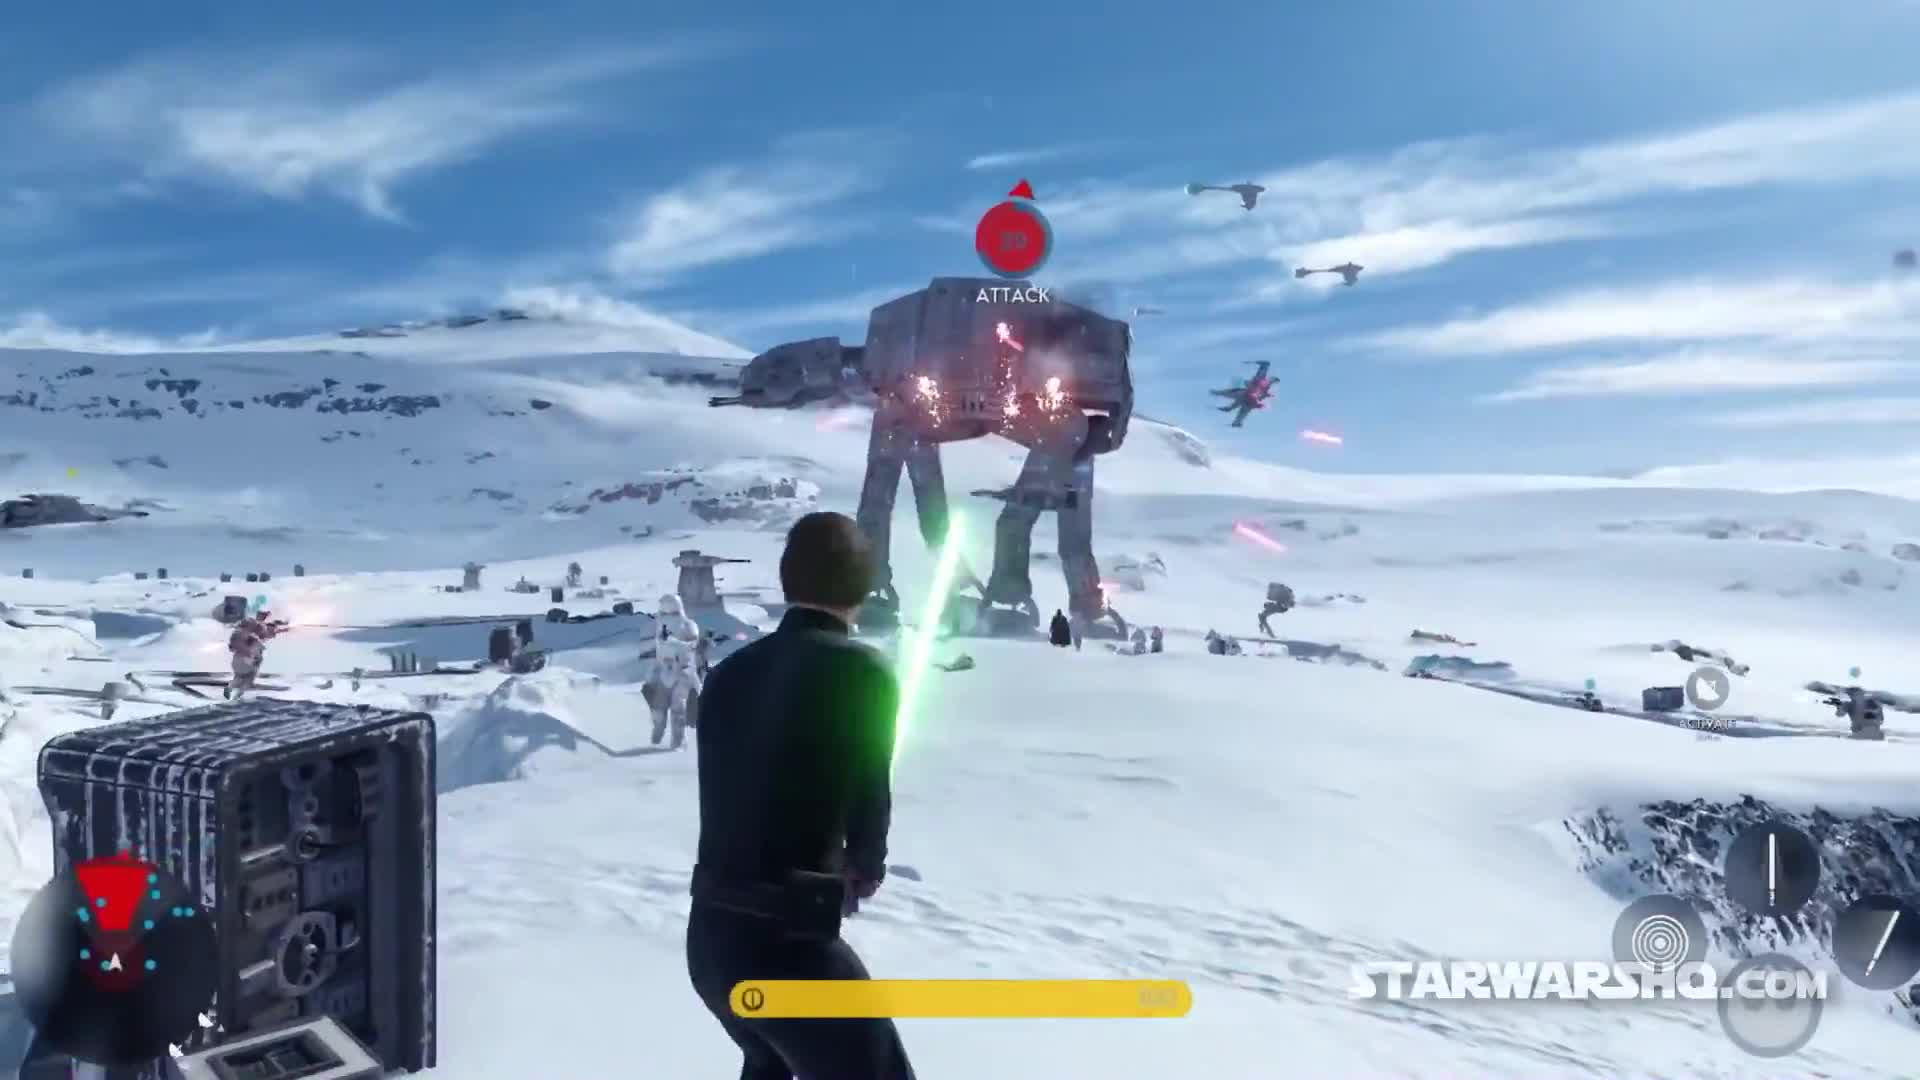 Star Wars Battlefront - fps vs tps